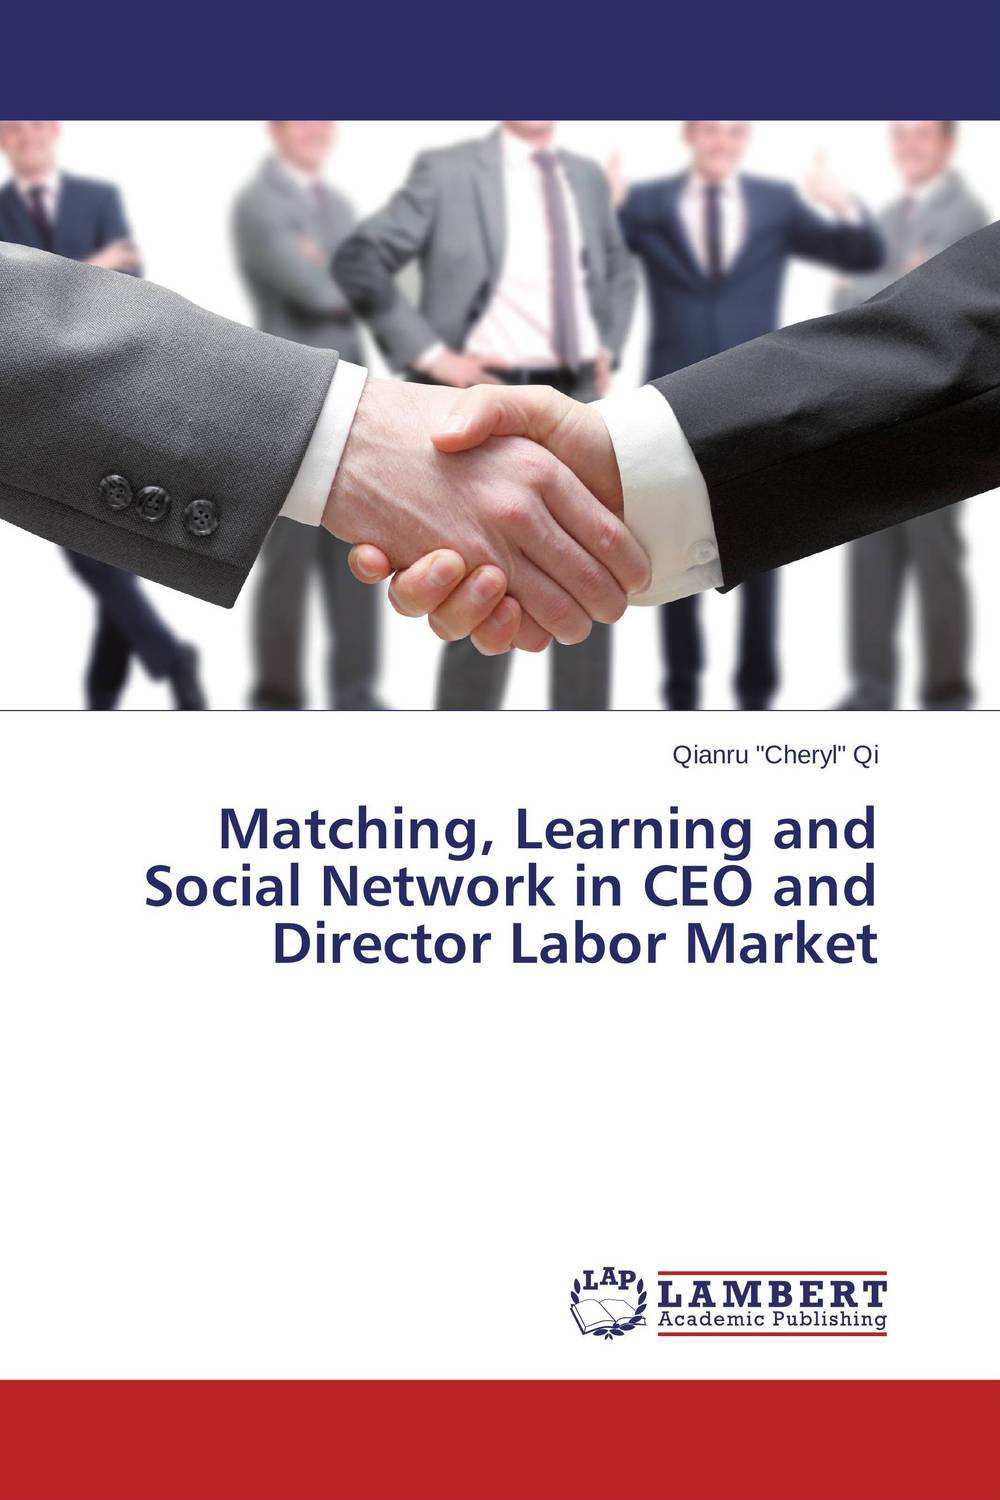 цены Matching, Learning and Social Network in CEO and Director Labor Market